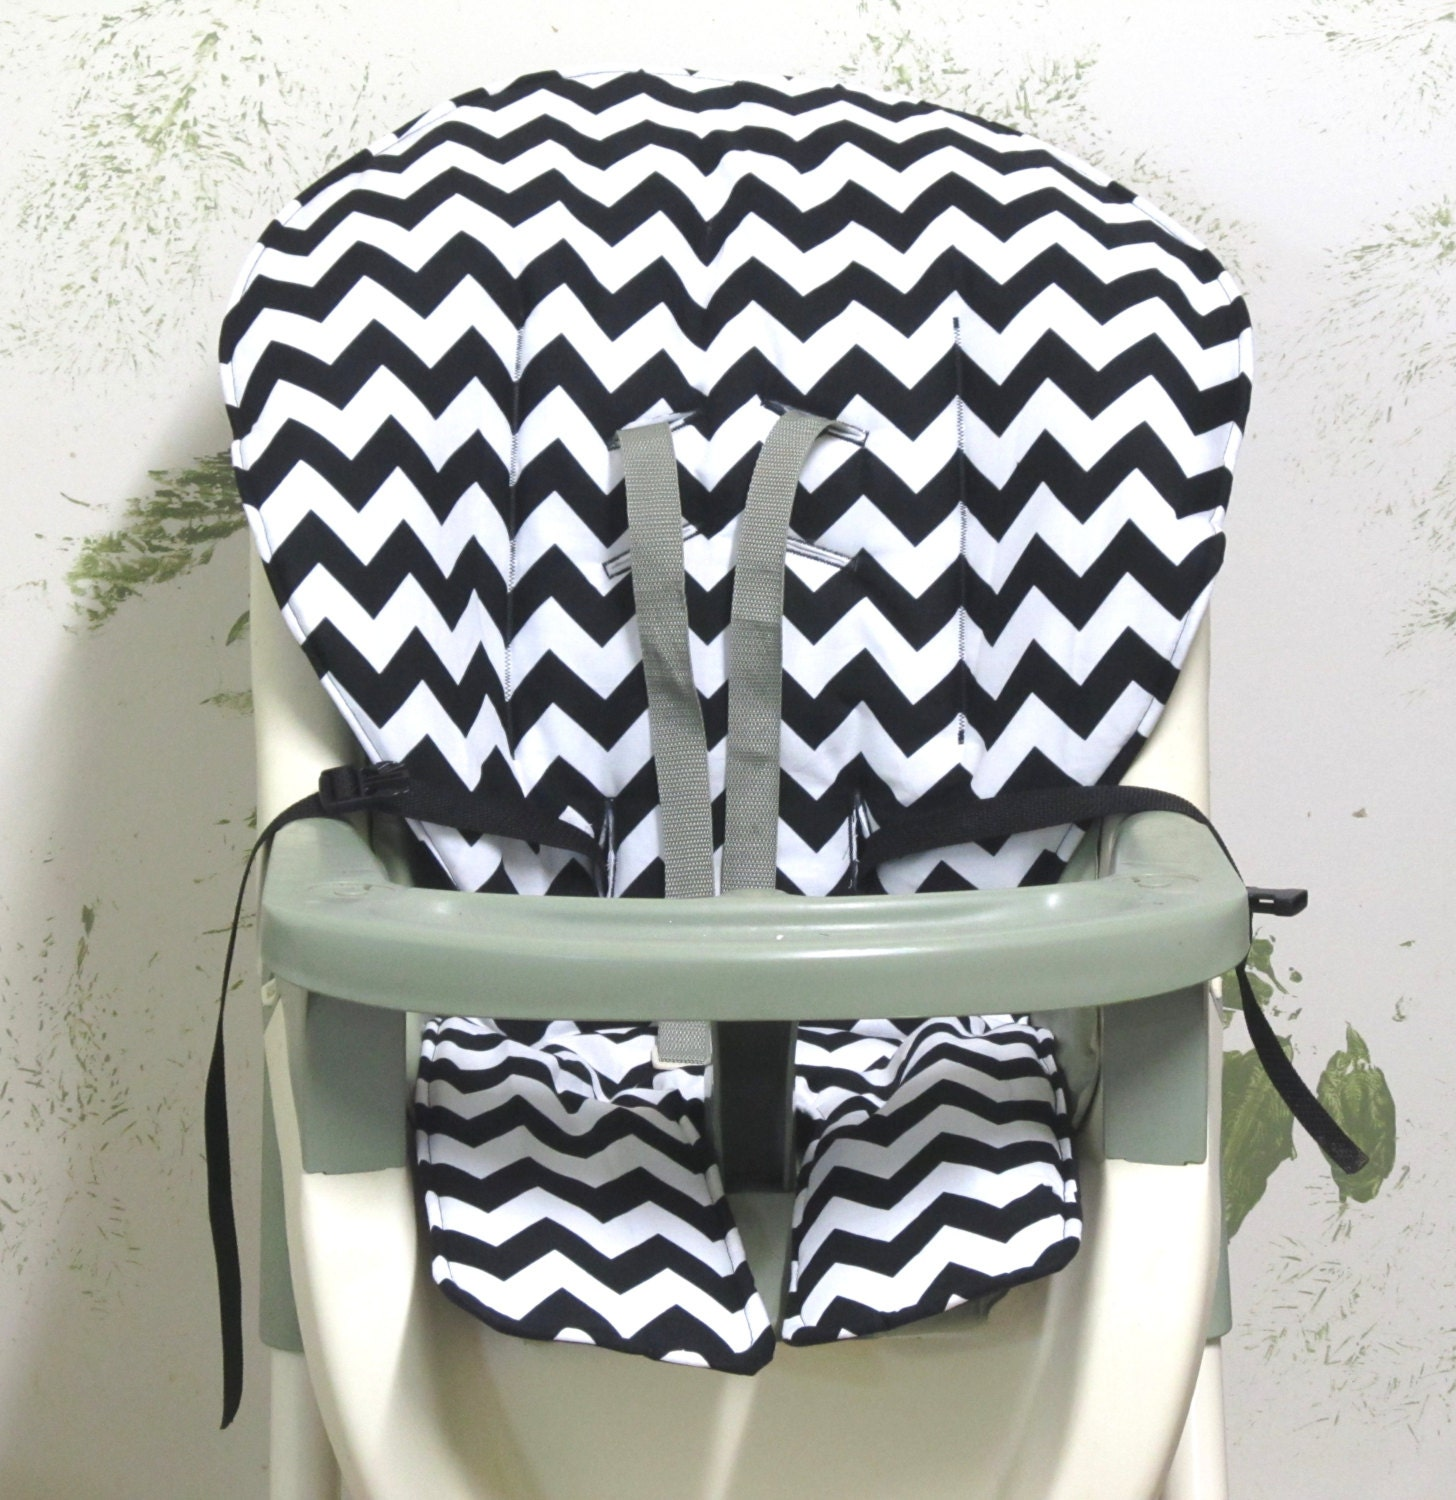 graco high chair cover pad replacement black and white. Black Bedroom Furniture Sets. Home Design Ideas